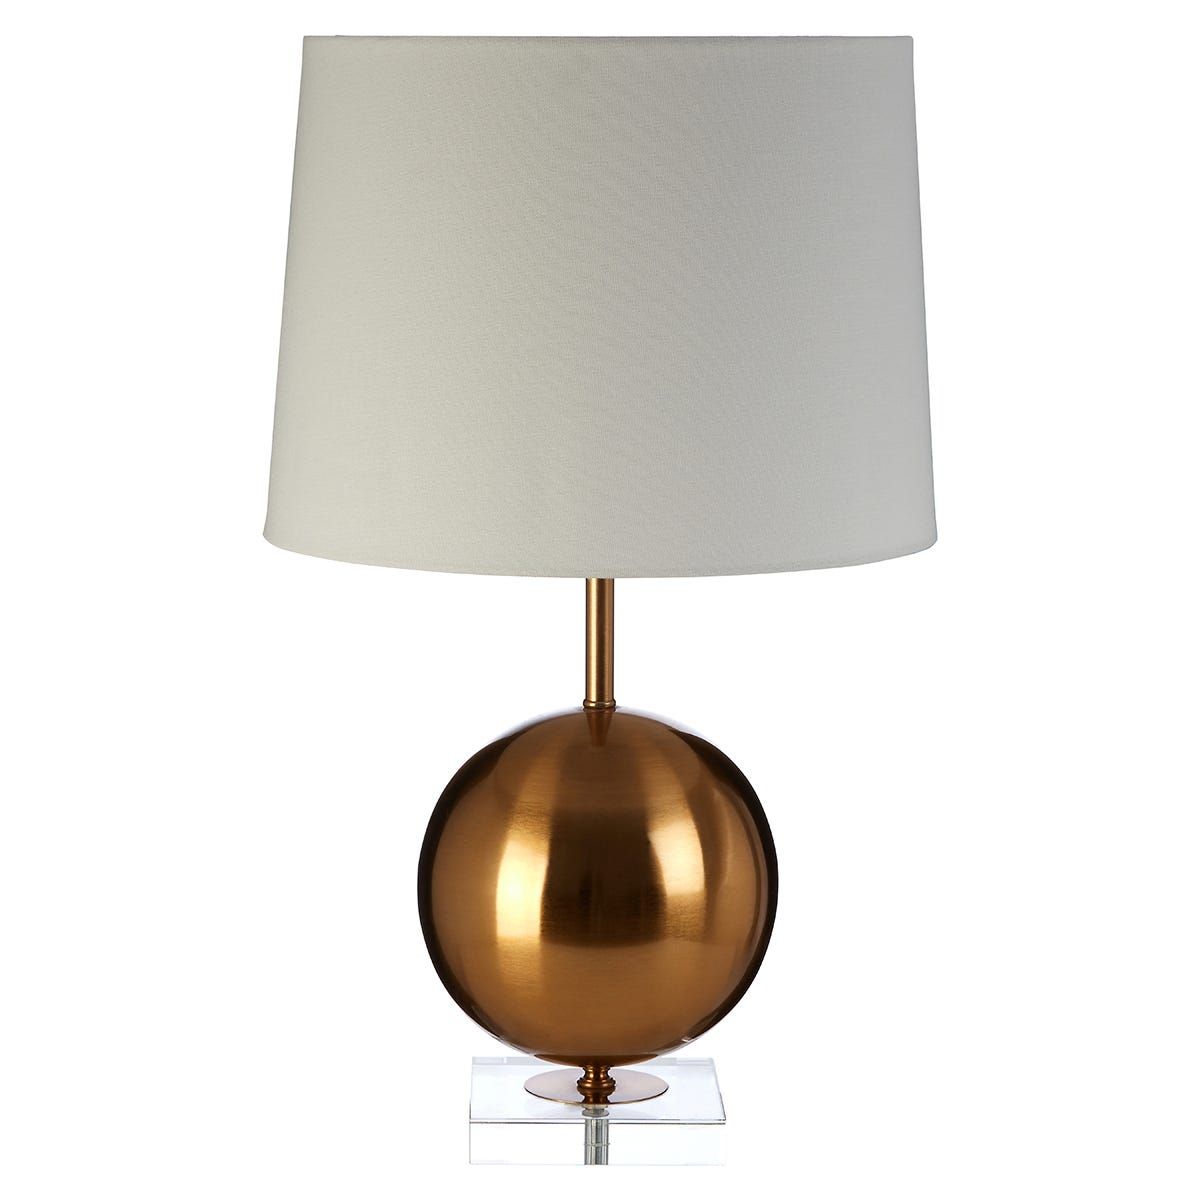 Premier Housewares Zena Table Lamp in Crystal/Gold Finish with White Linen Shade